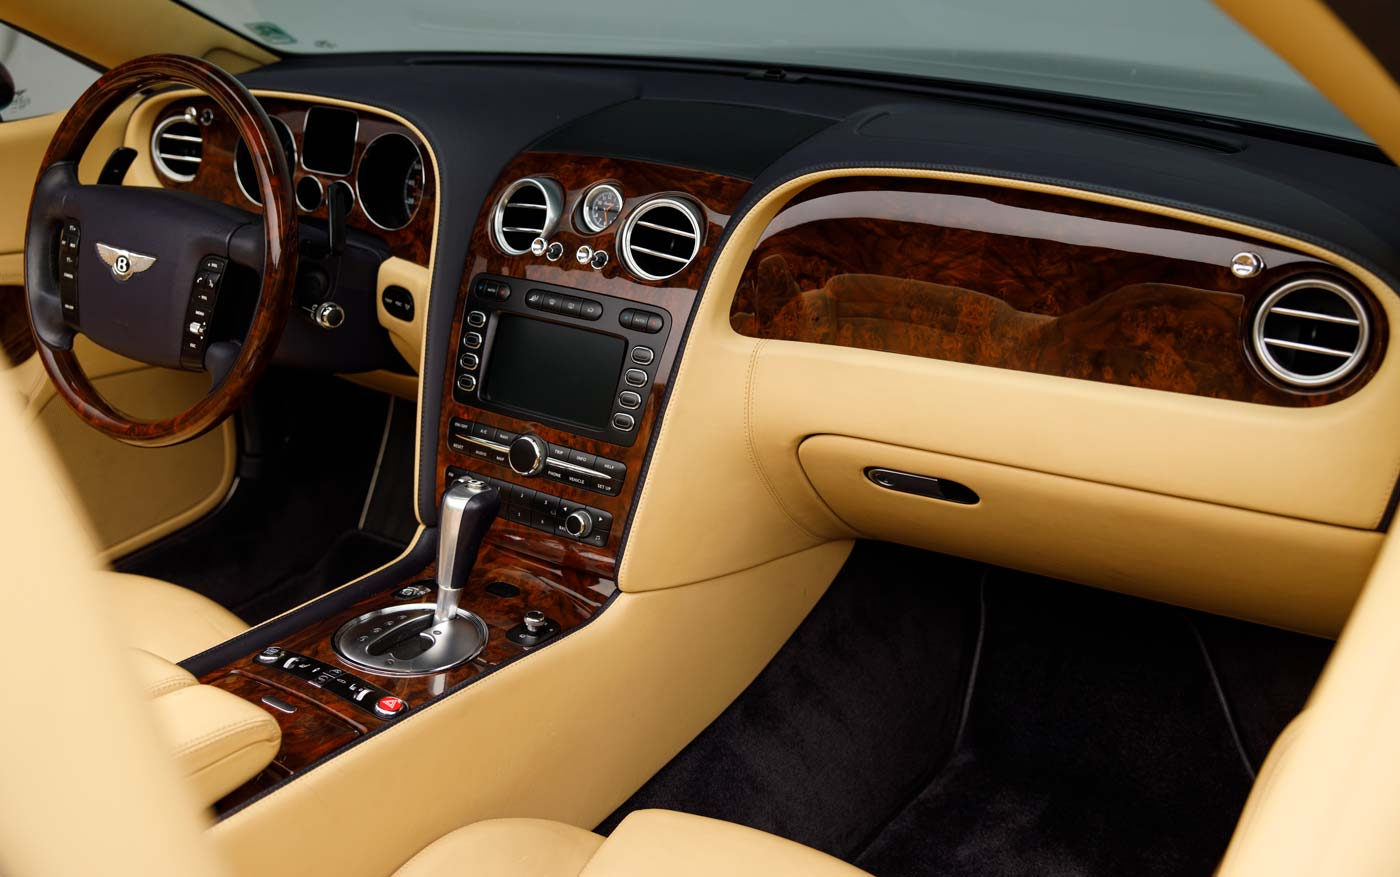 2007 Bentley Continental GTC - The JBS Collection